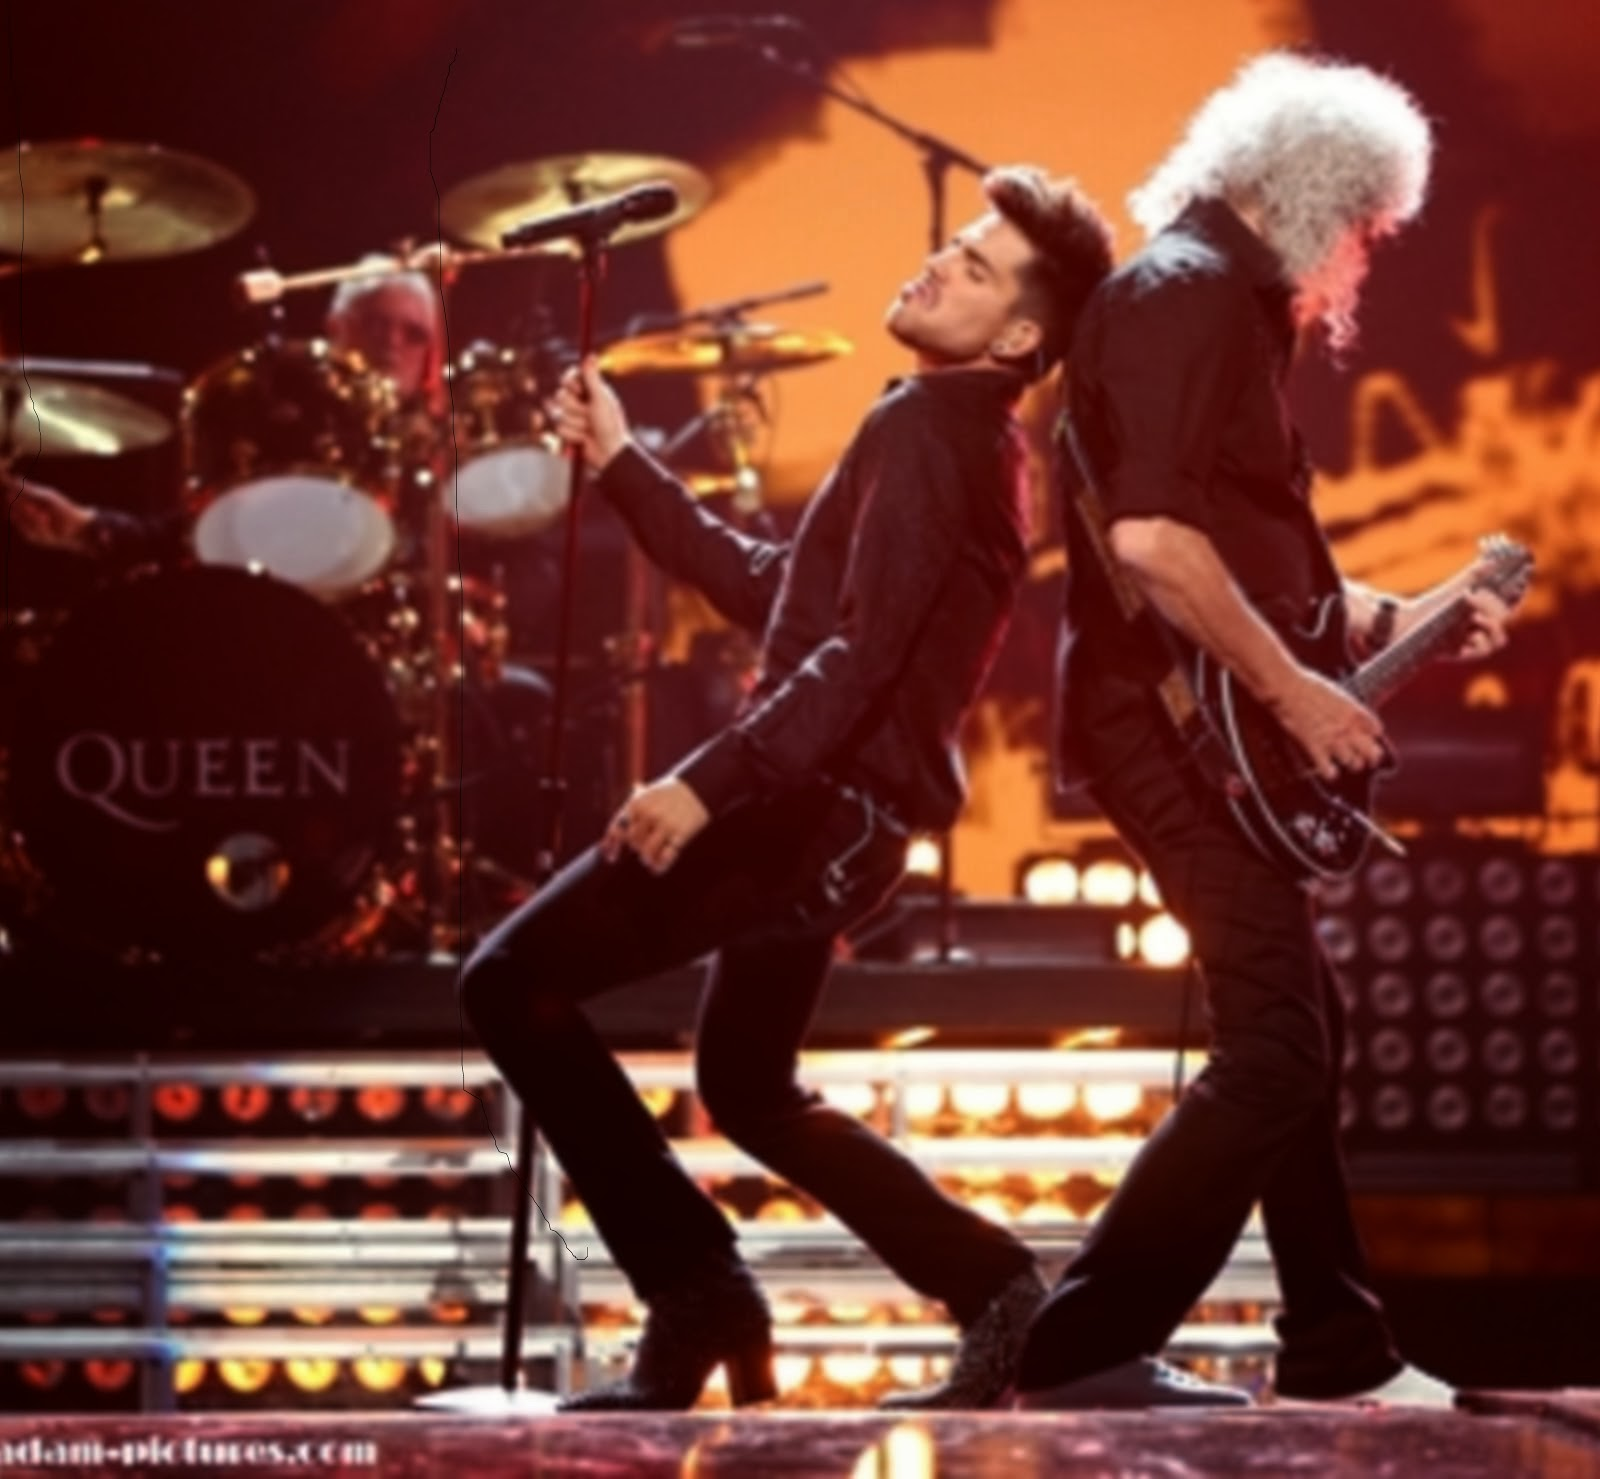 Queen + Adam Lambert at I Heart Radio